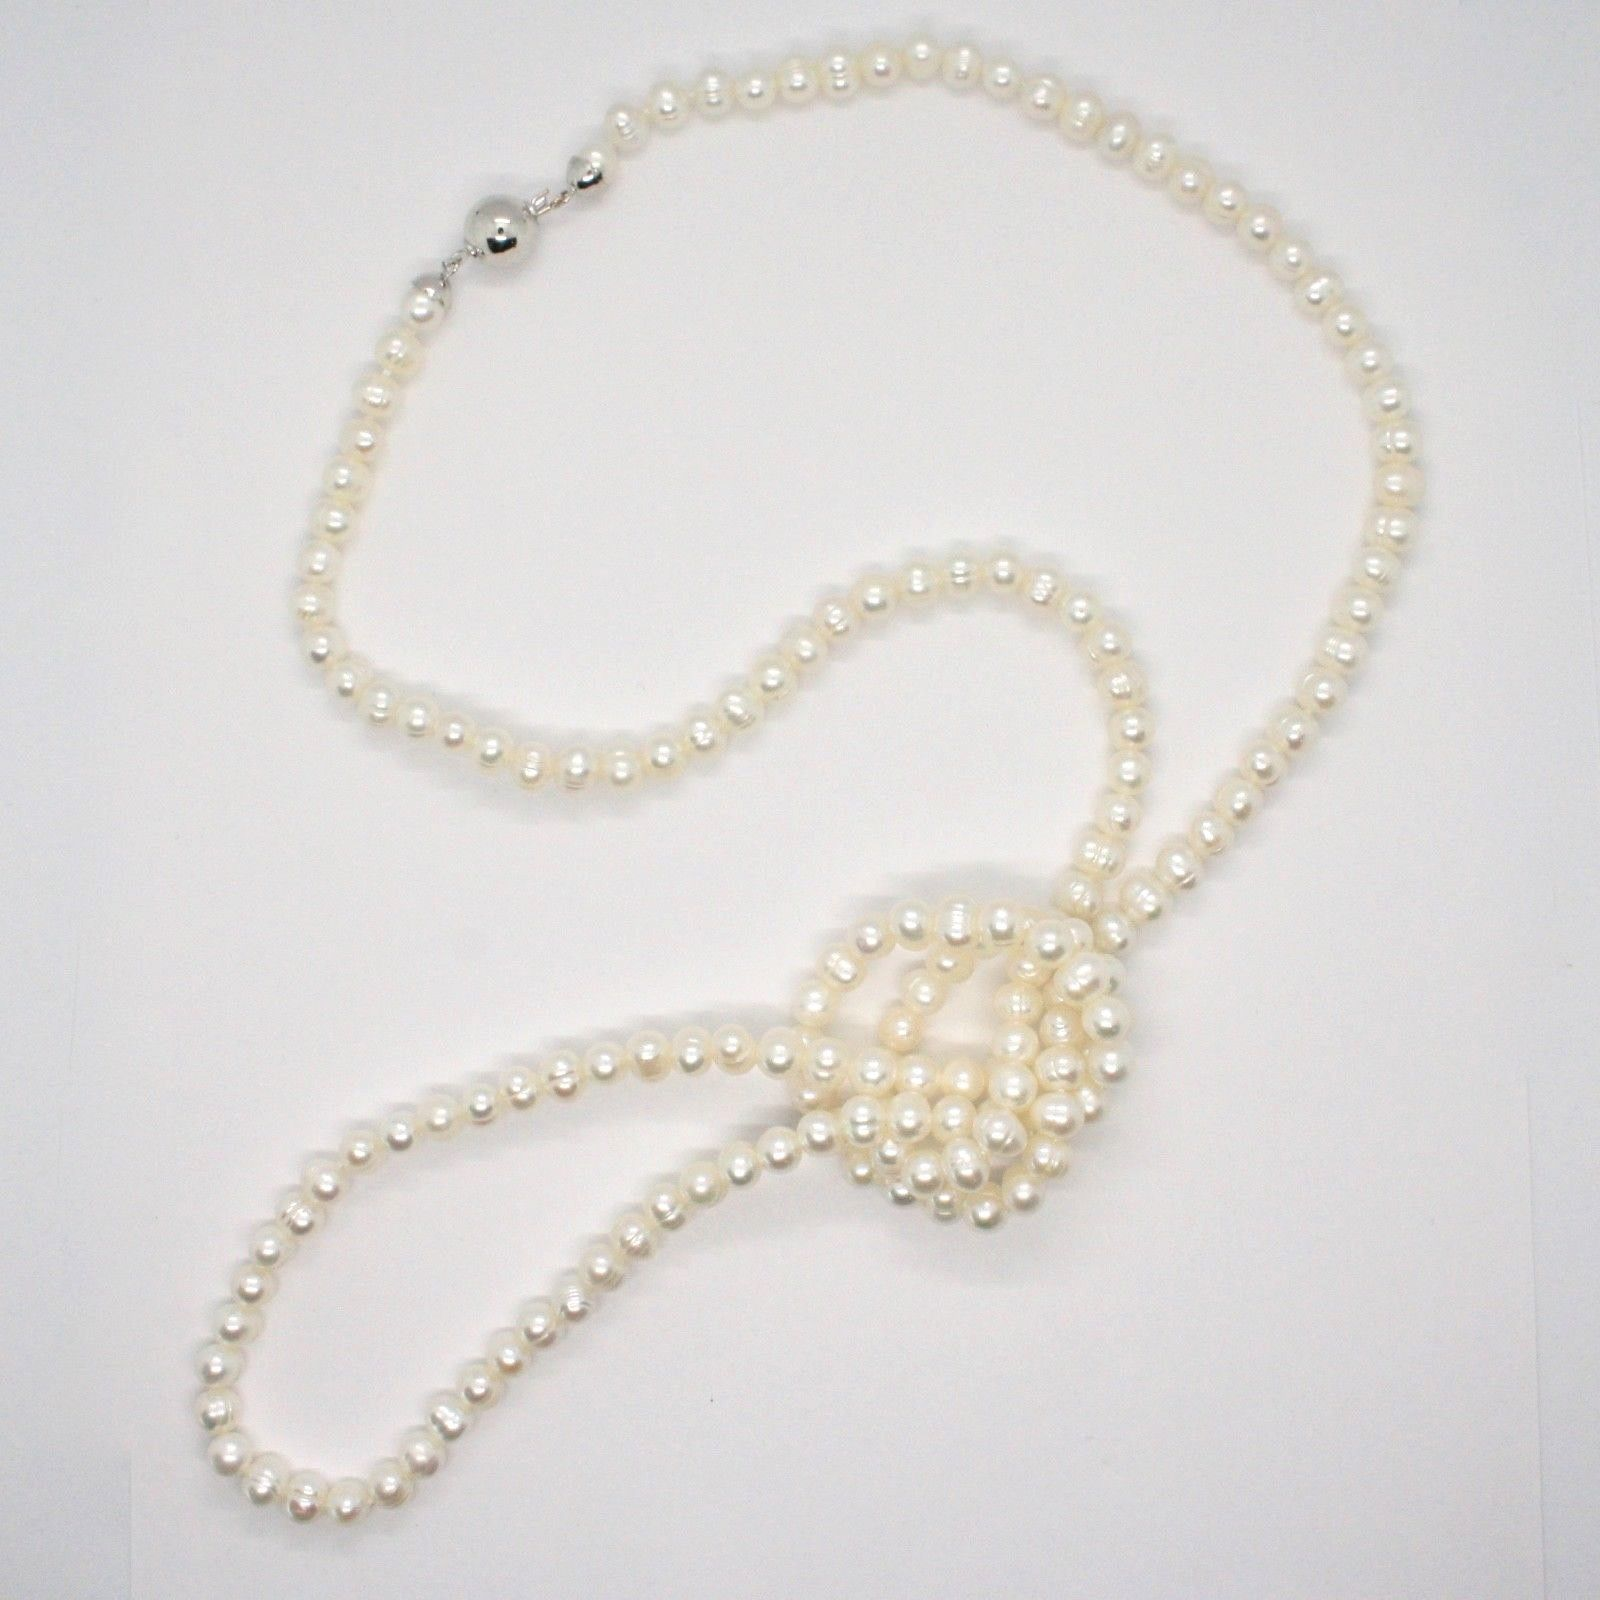 Collier Long 110 cm en or Blanc 18k Perles Blanches Eau Douce Made IN Italy